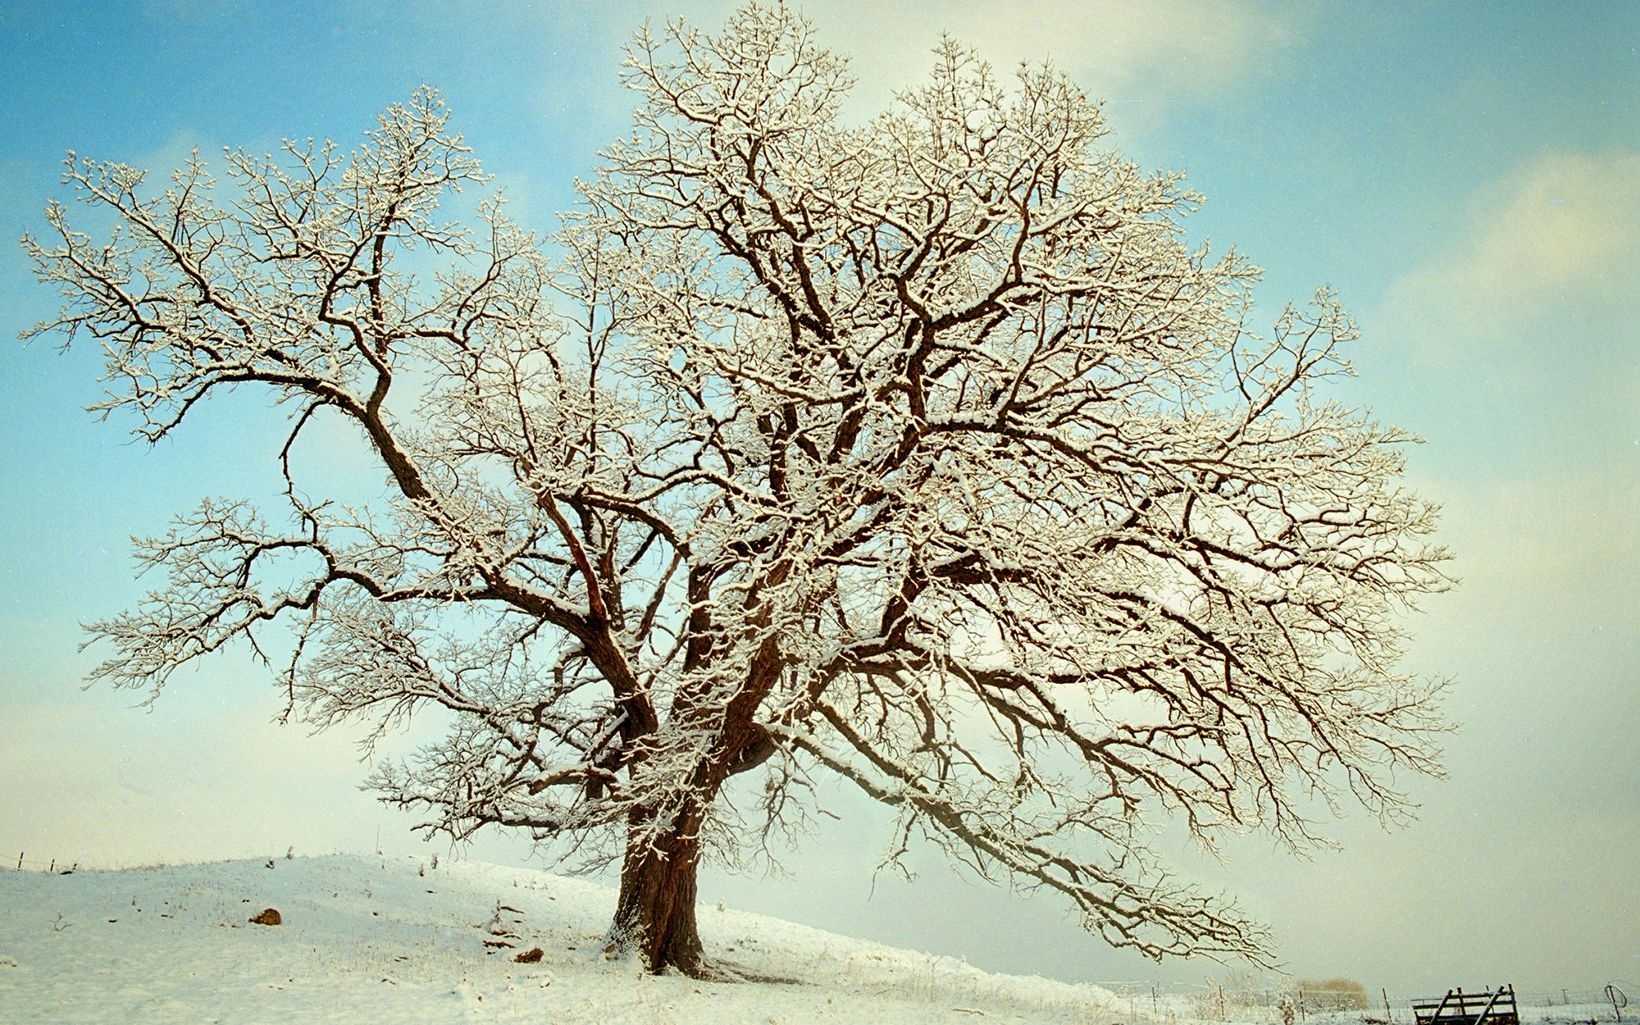 The wide-spreading branches of a large burr oak tree, standing on a small hill with blue sky overhead, are covered with snow.